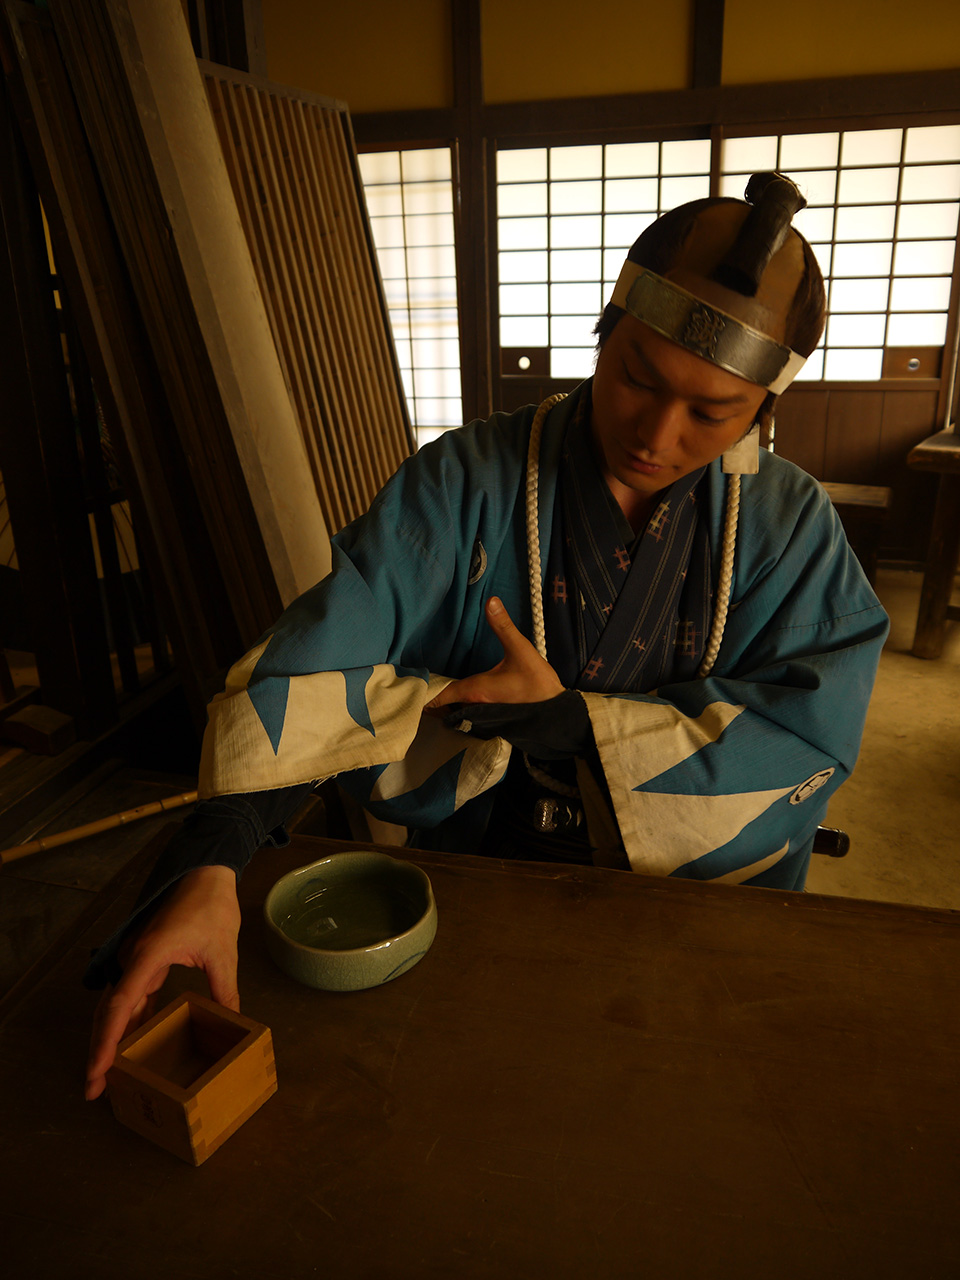 Takahiro Hotta in blue hakama reaching for cup tamoto